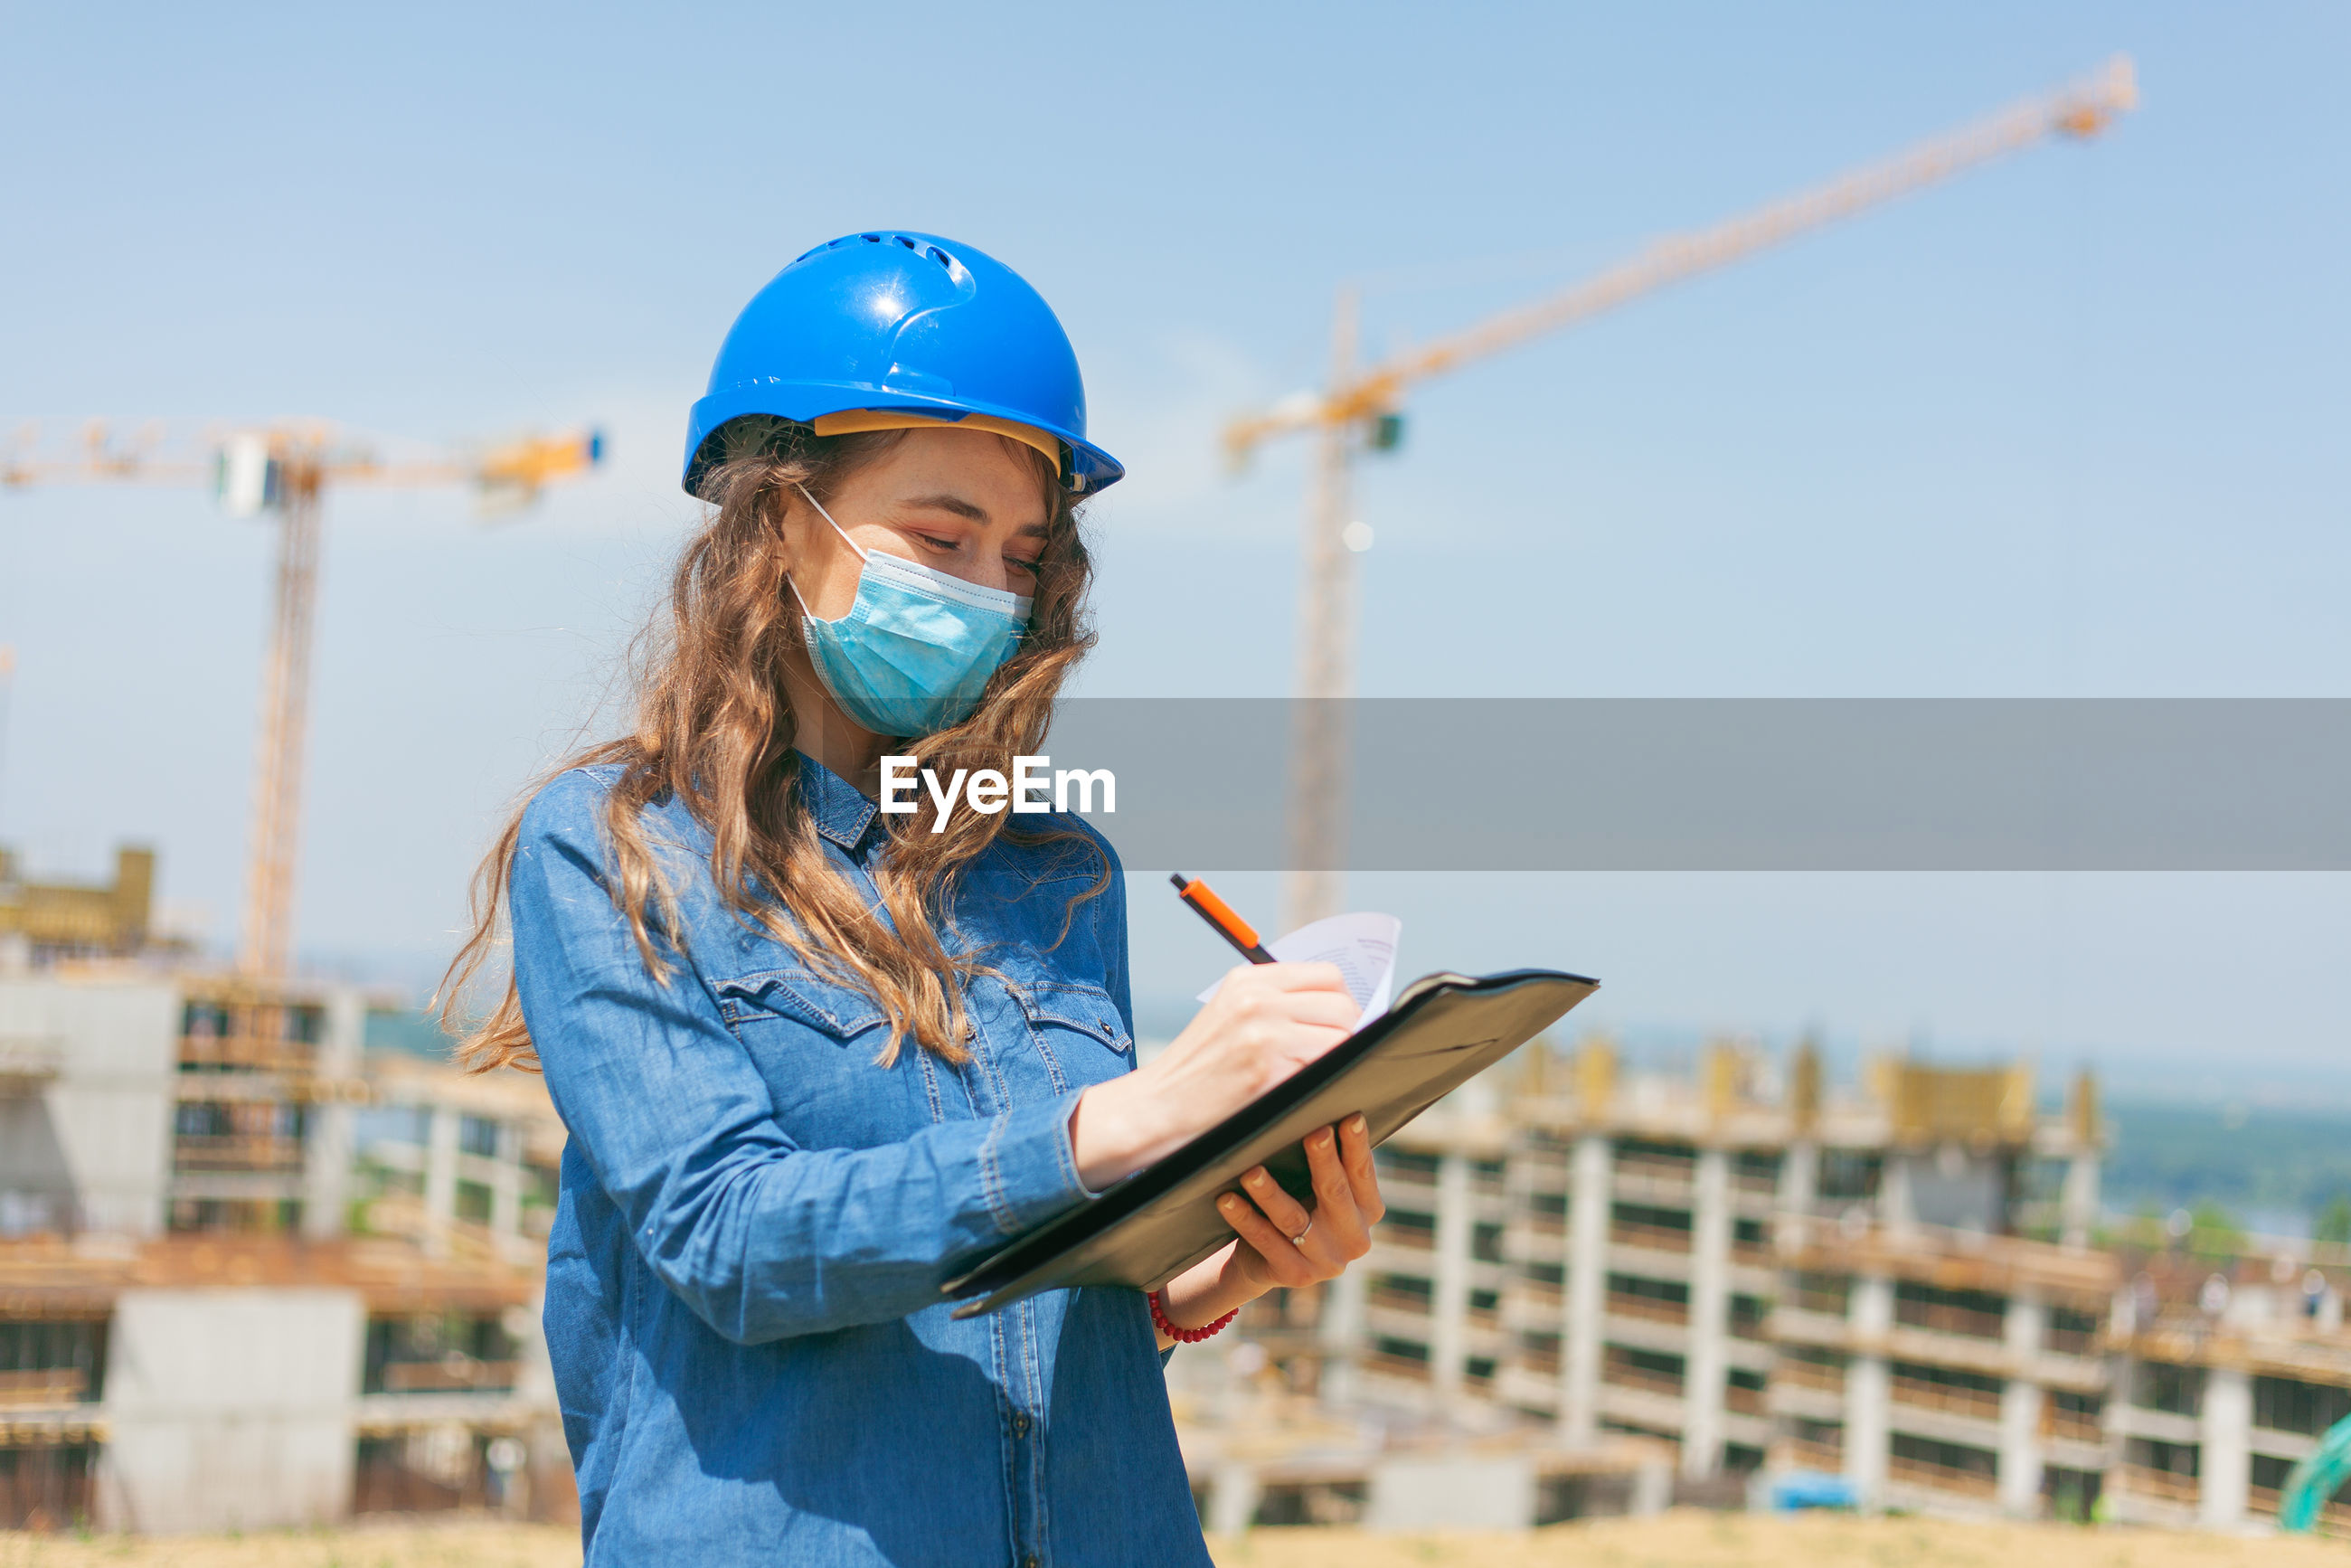 YOUNG WOMAN USING SMART PHONE WHILE STANDING AT CONSTRUCTION SITE